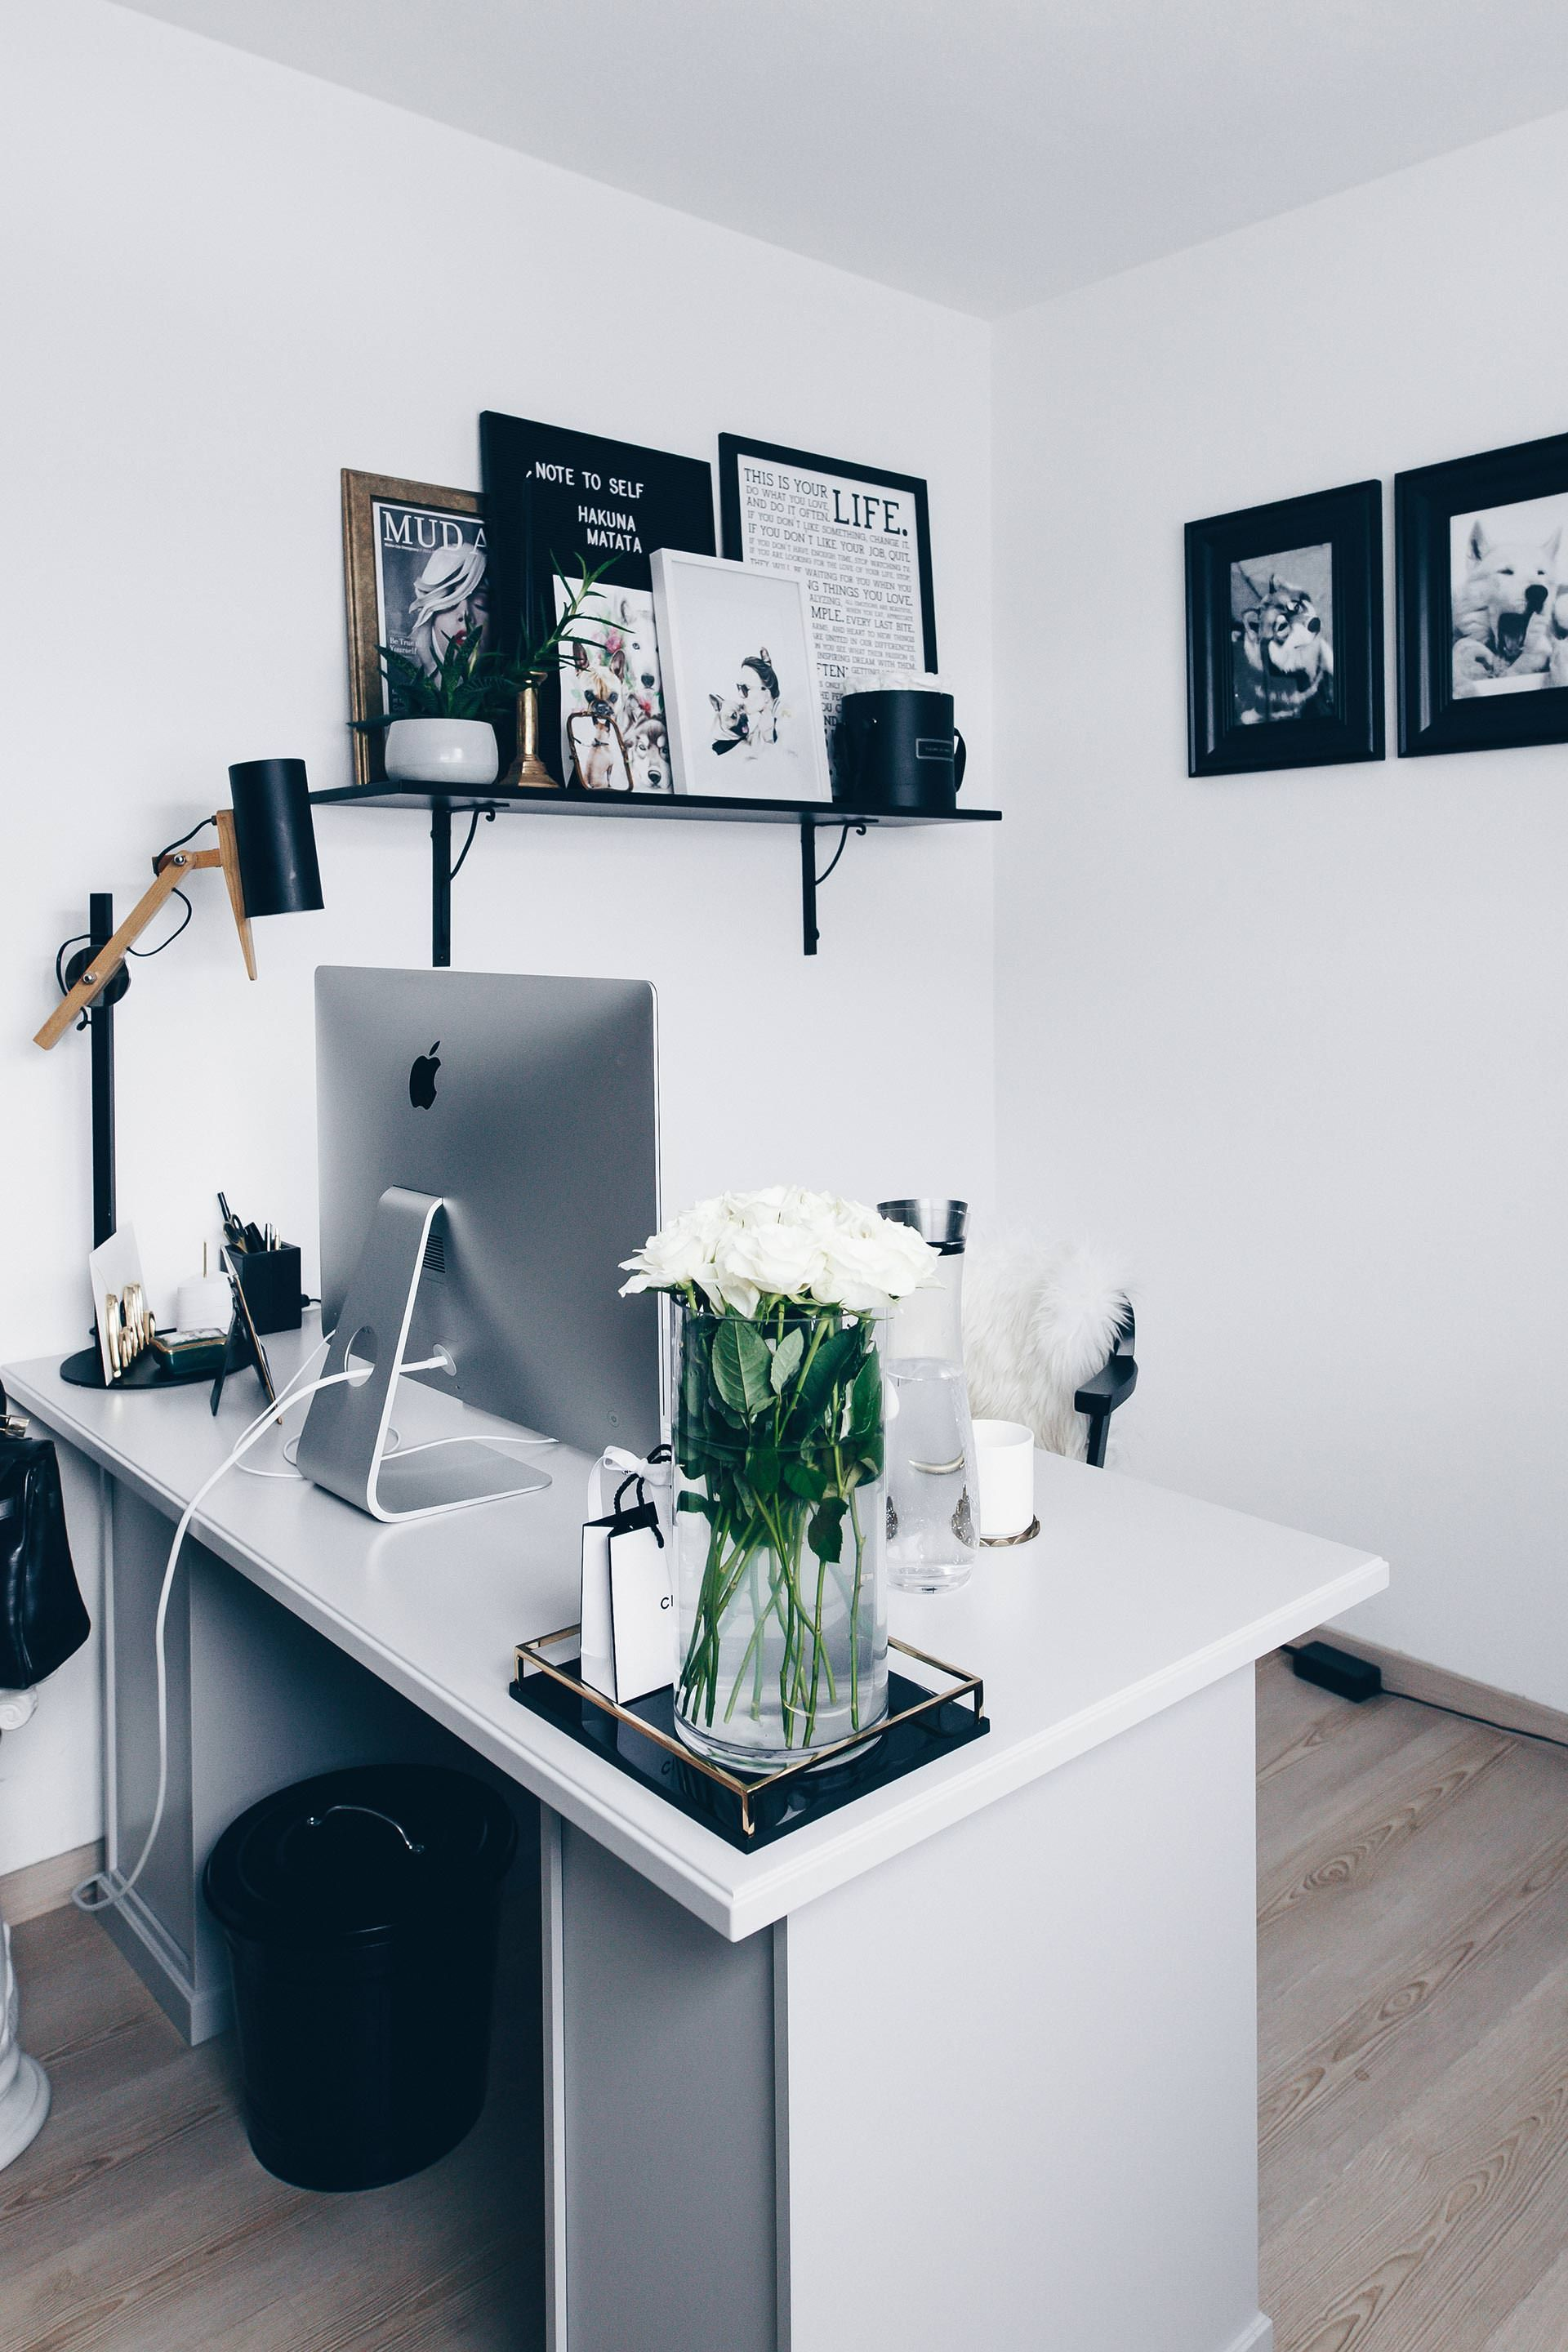 arbeitsplatz zuhause einrichten 5 ideen f r mehr stil im blogger home office home office. Black Bedroom Furniture Sets. Home Design Ideas